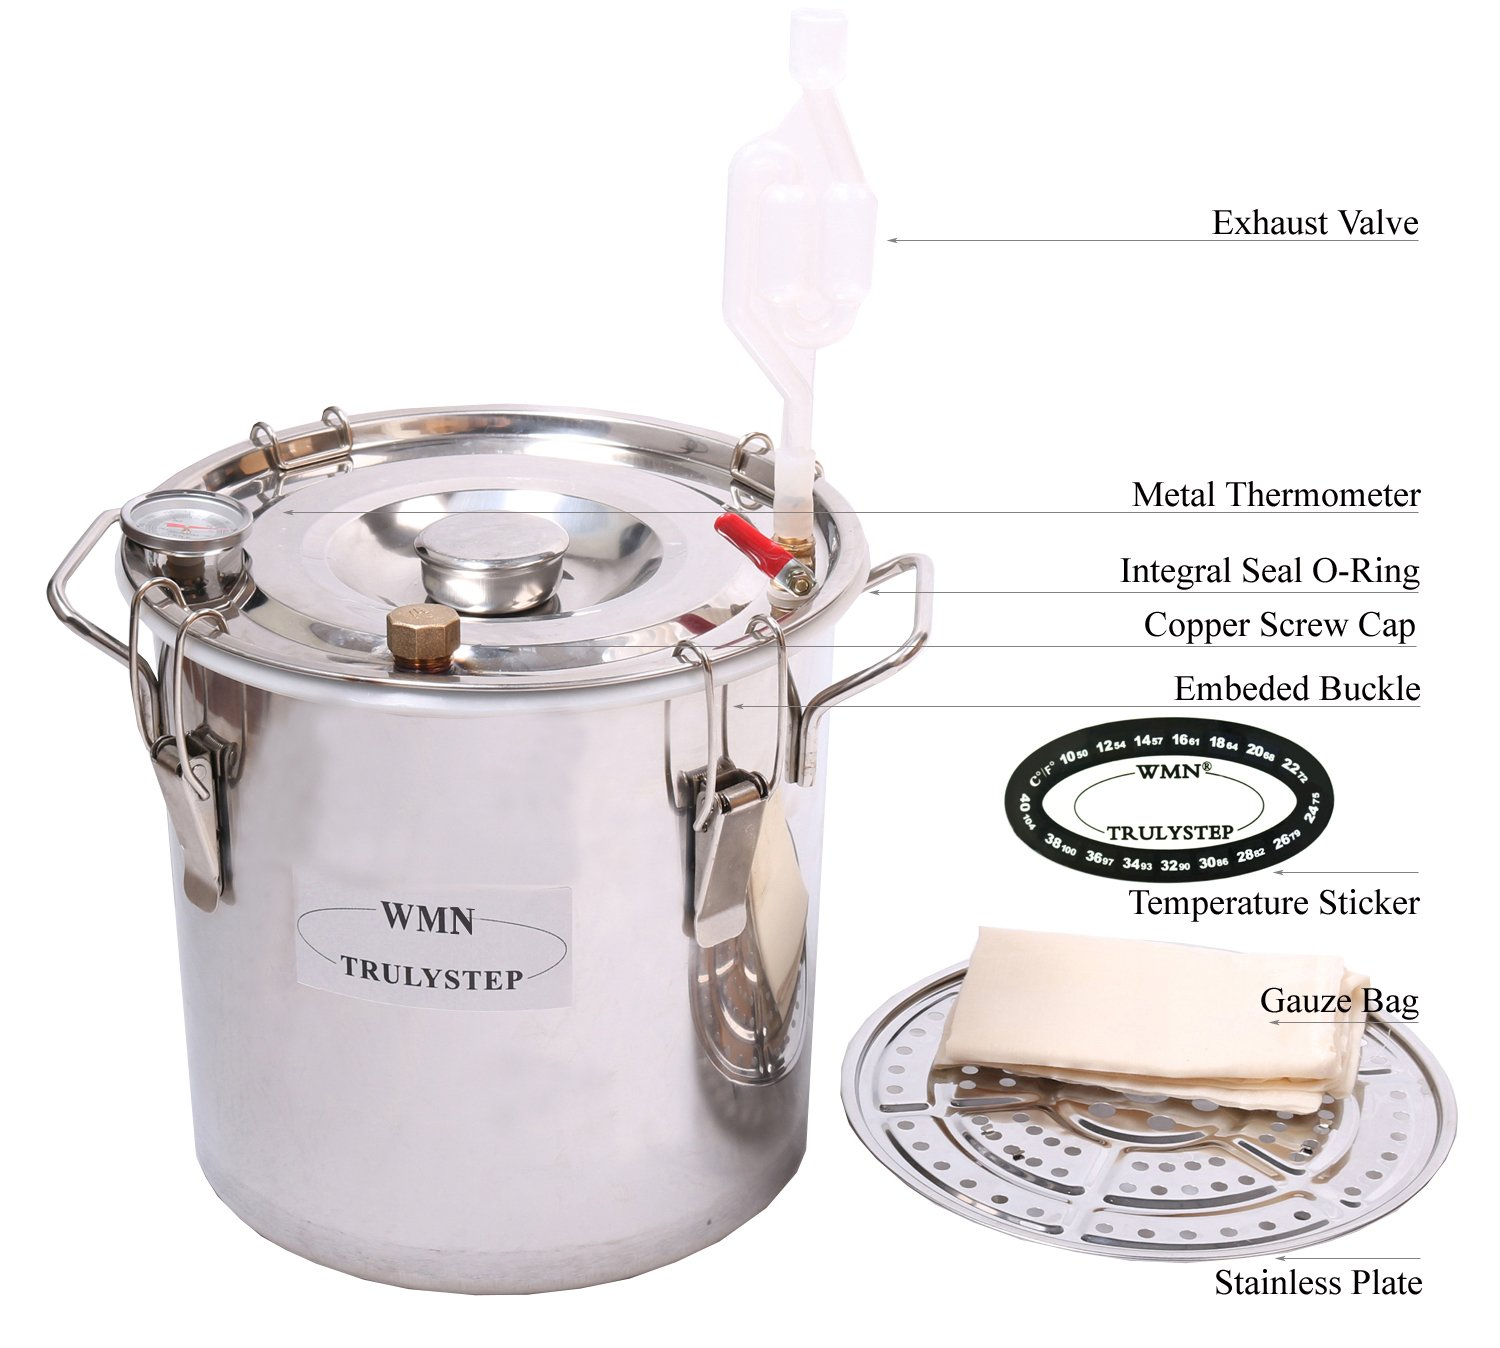 New 3 Pots DIY 3 Gal 12 Litres Alcohol Moonshine Ethanol Still Spirits Stainless Steel Boiler Water Distiller Whiskey Wine Making Kit by WMN_TRULYSTEP (Image #3)